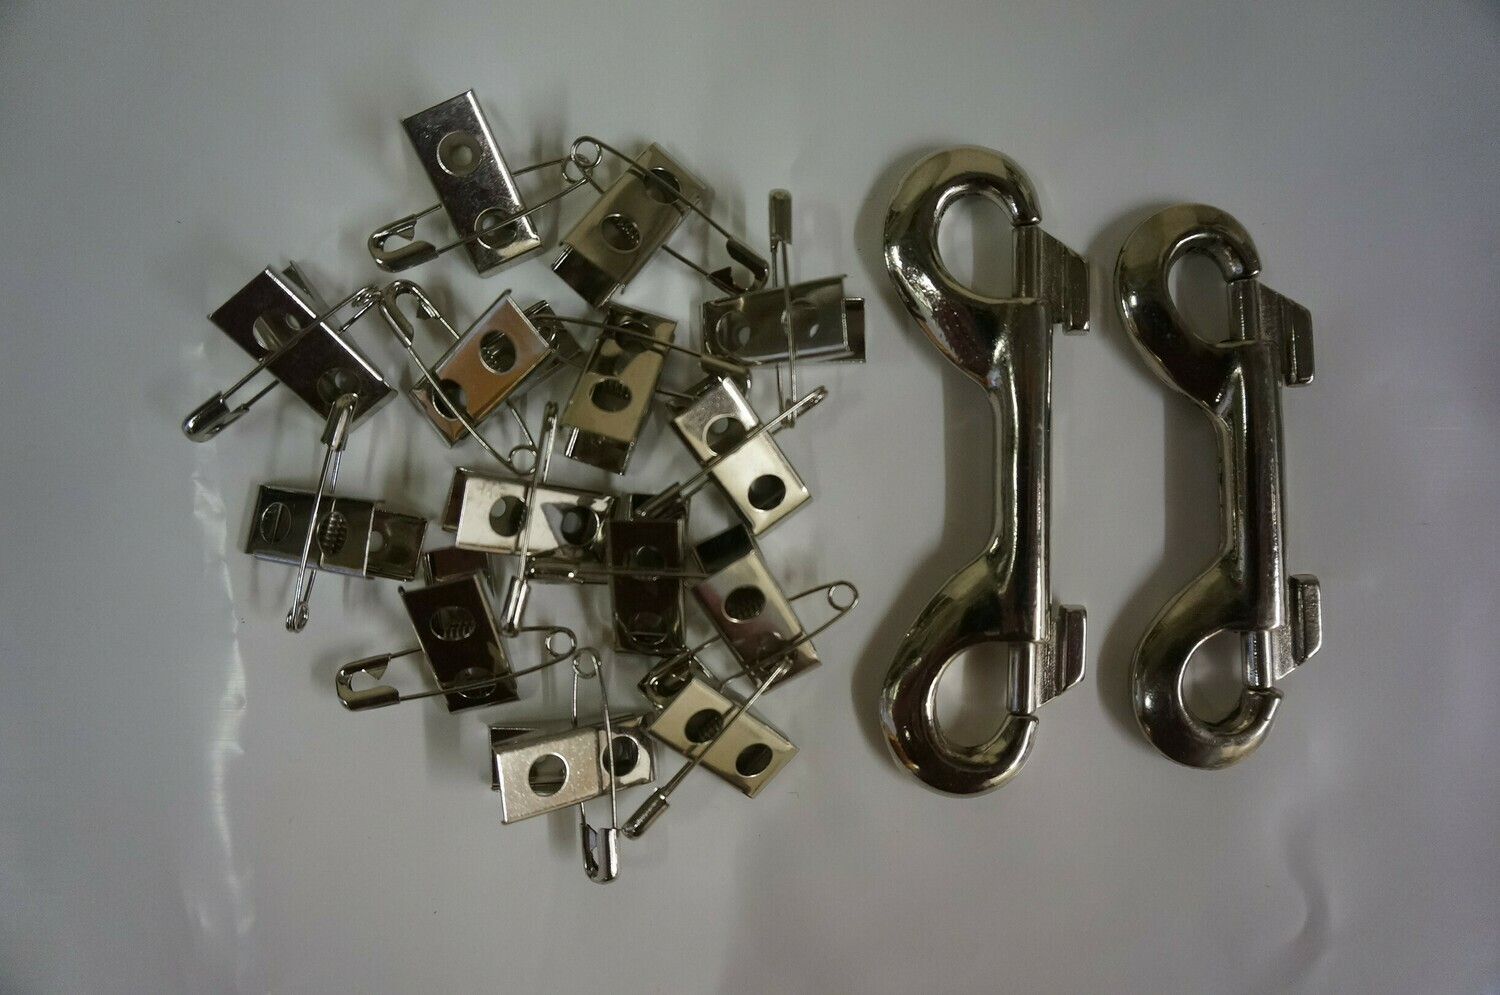 Stainless Steel : Pet Show Breed - Card / Ring Clips - Ref (1306) + Nickel Plated : Double Ended Spring Loaded Hooks – Ref (7100)